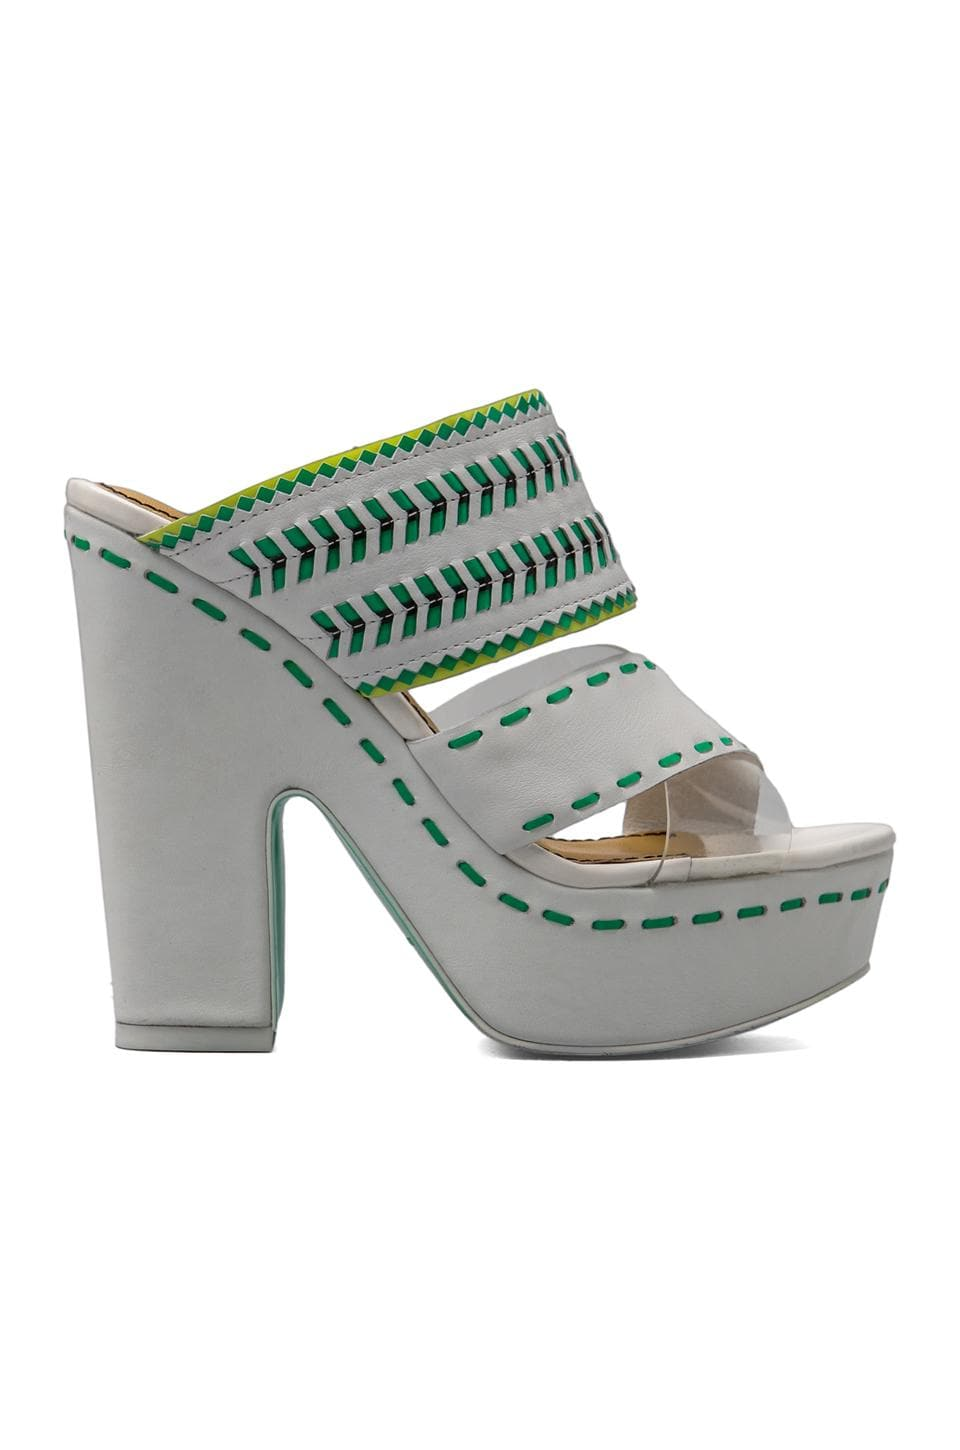 Nanette Lepore Mai Tai Heel in White Leather/ Multi